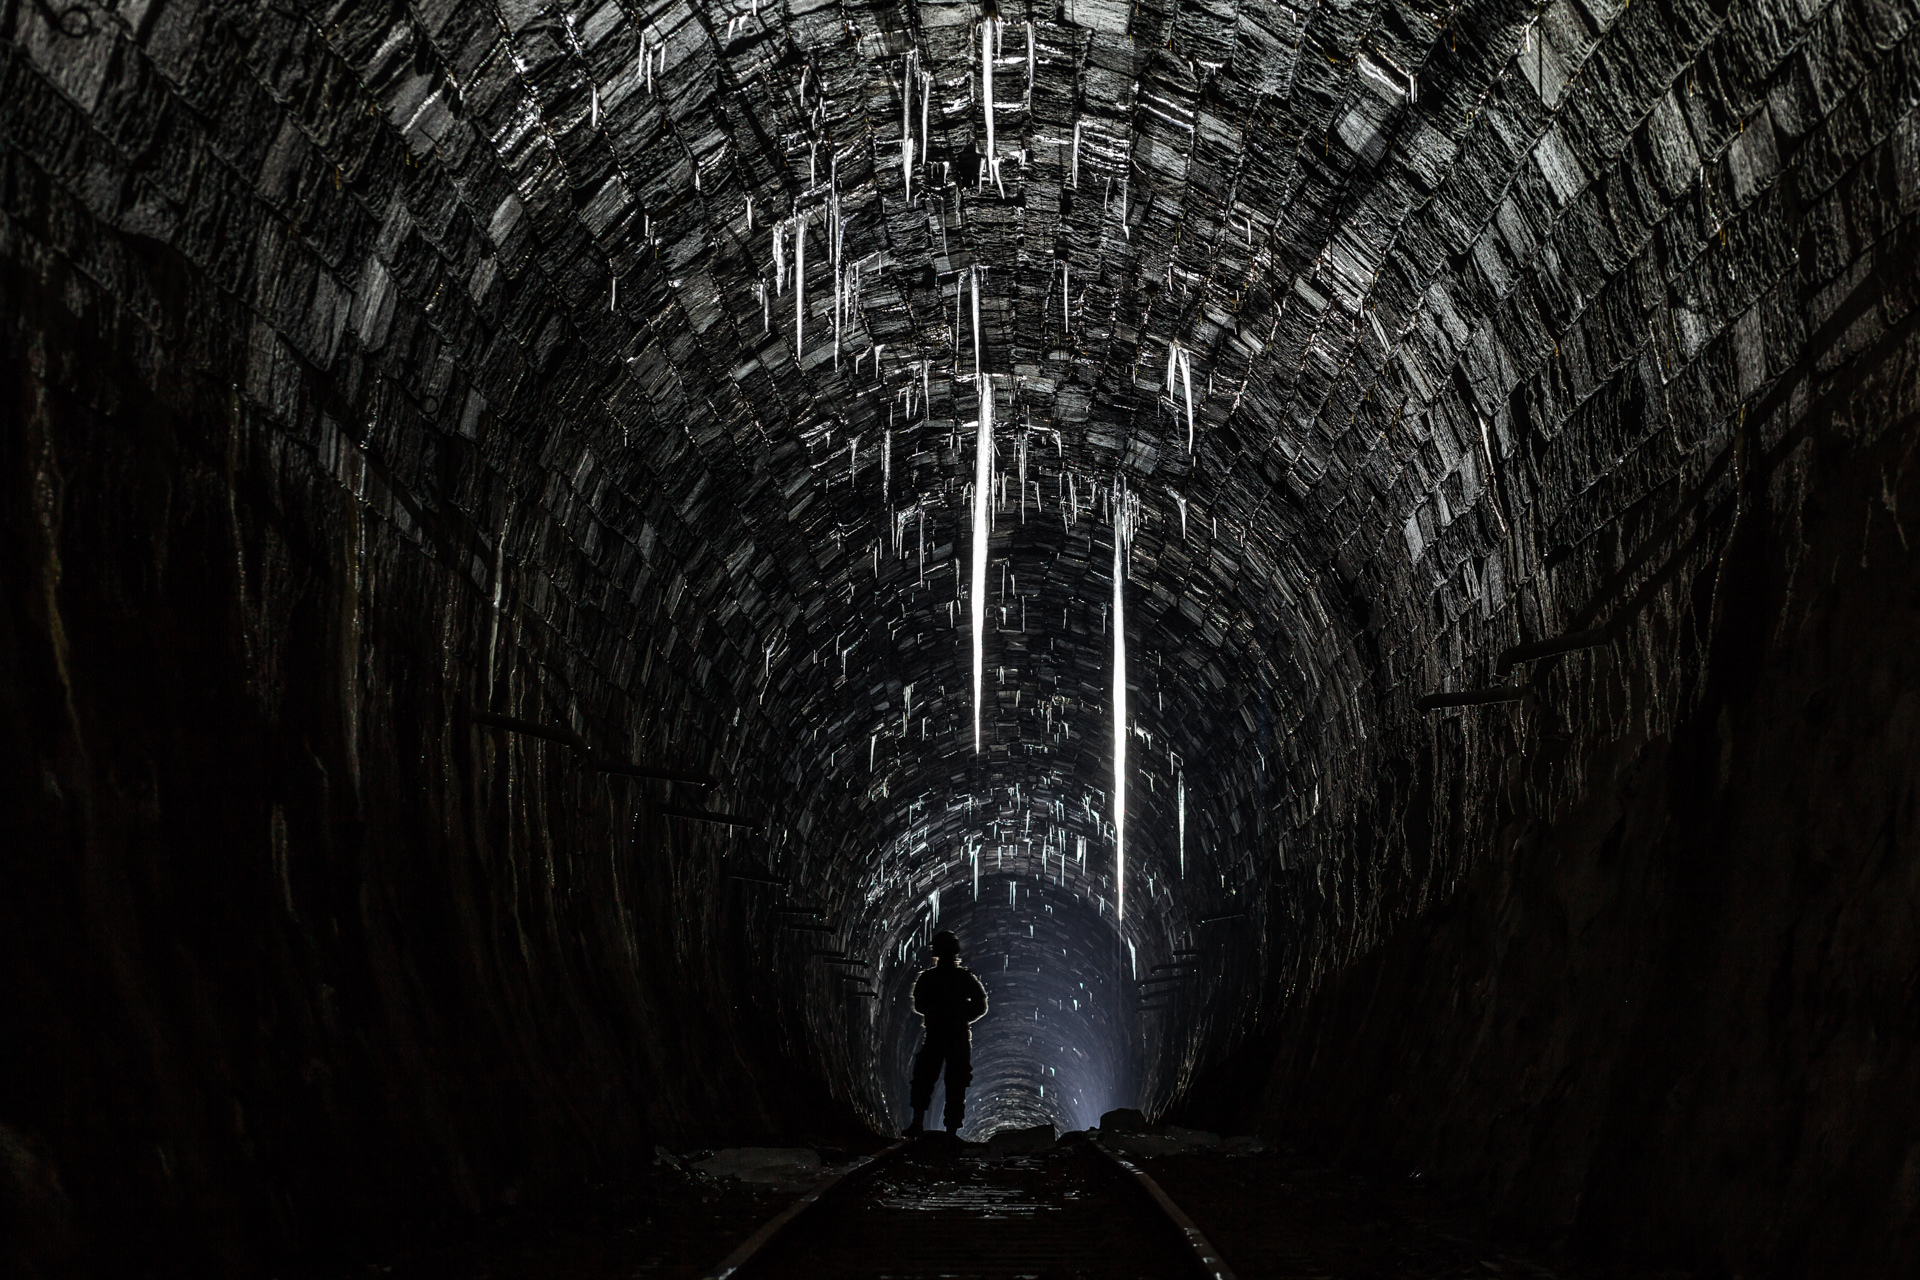 Urban Exploration - Turntable Station - Icicle Tunnel